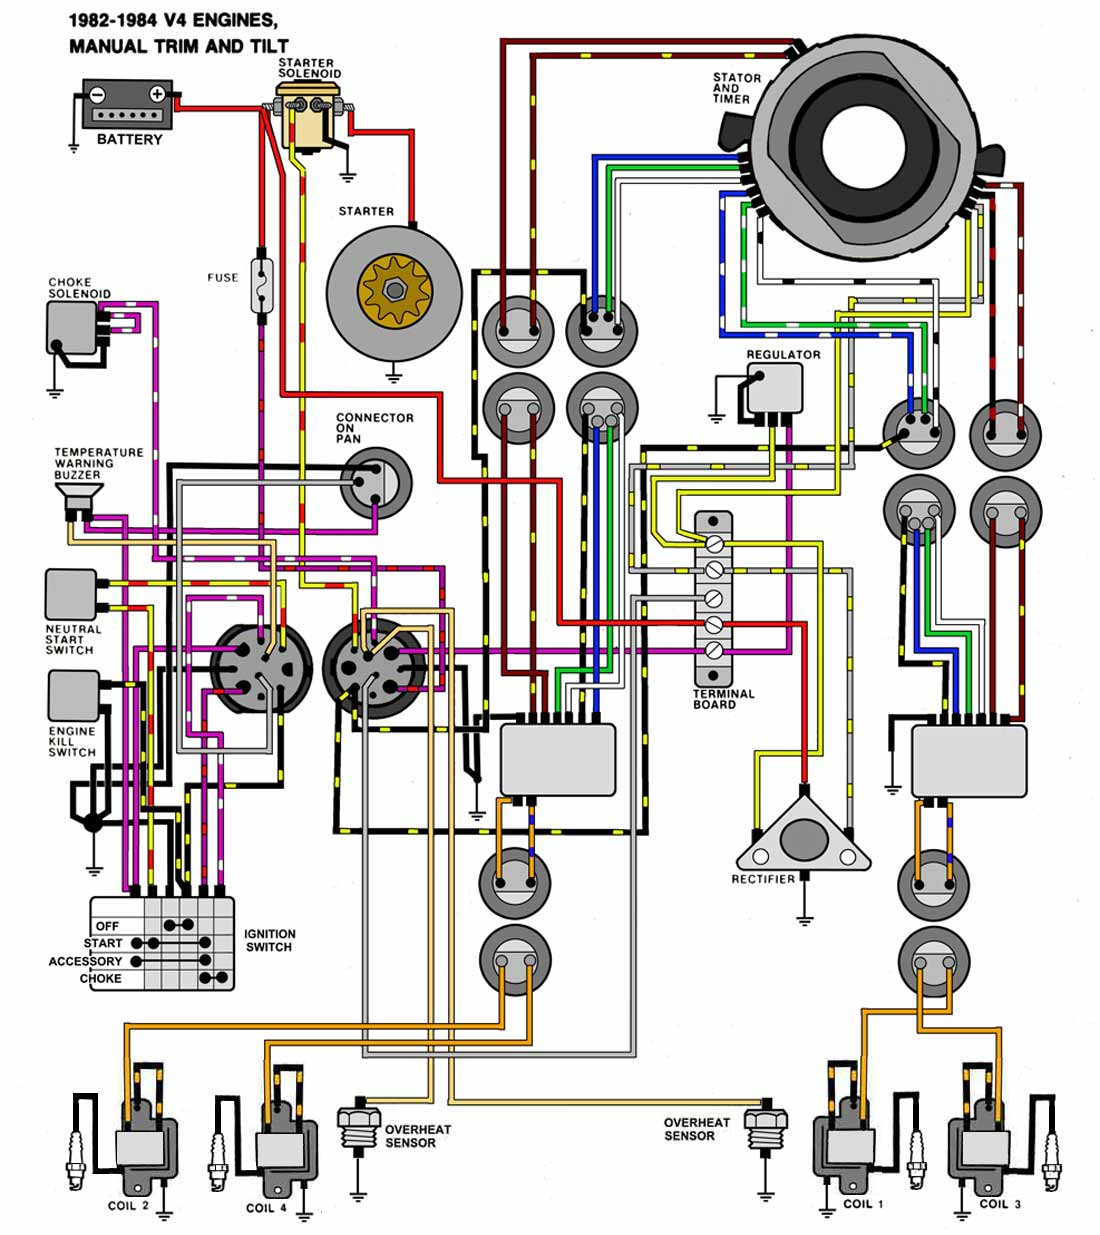 82_84_V4_NOTNT mastertech marine evinrude johnson outboard wiring diagrams evinrude key switch wiring diagram at crackthecode.co